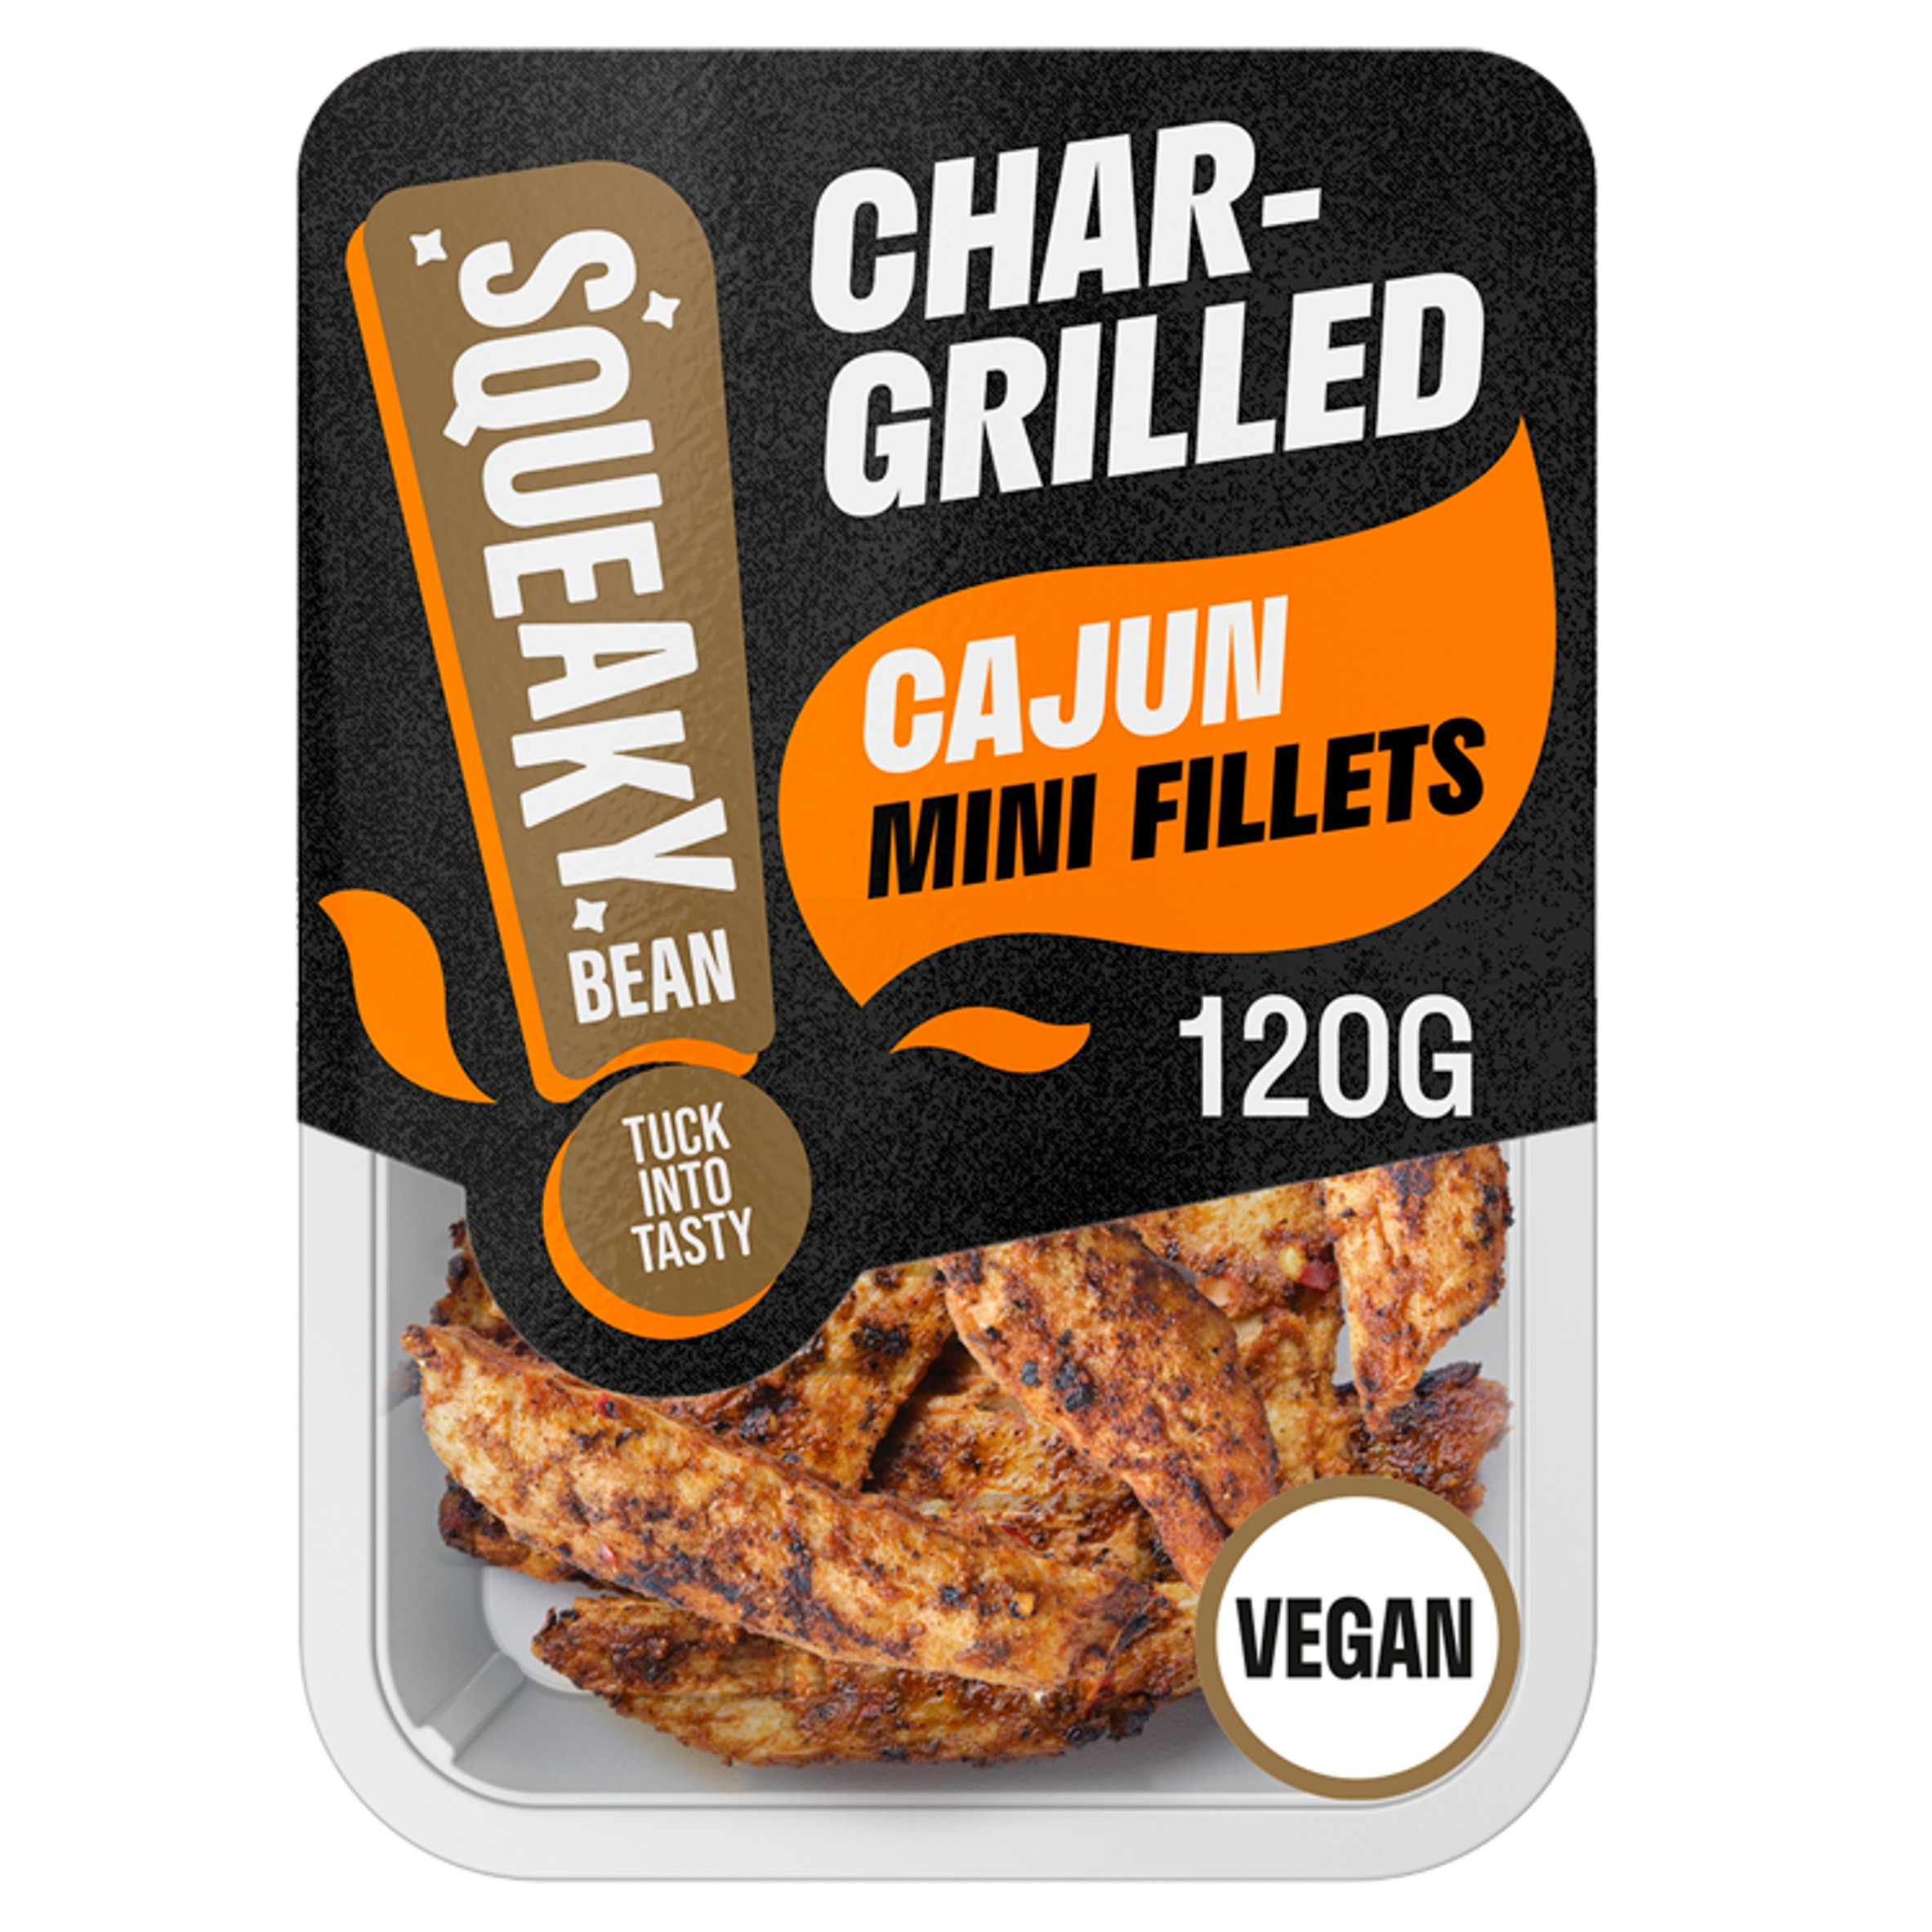 Squeaky Bean Chargrilled Mini Fillets Cajun 120G